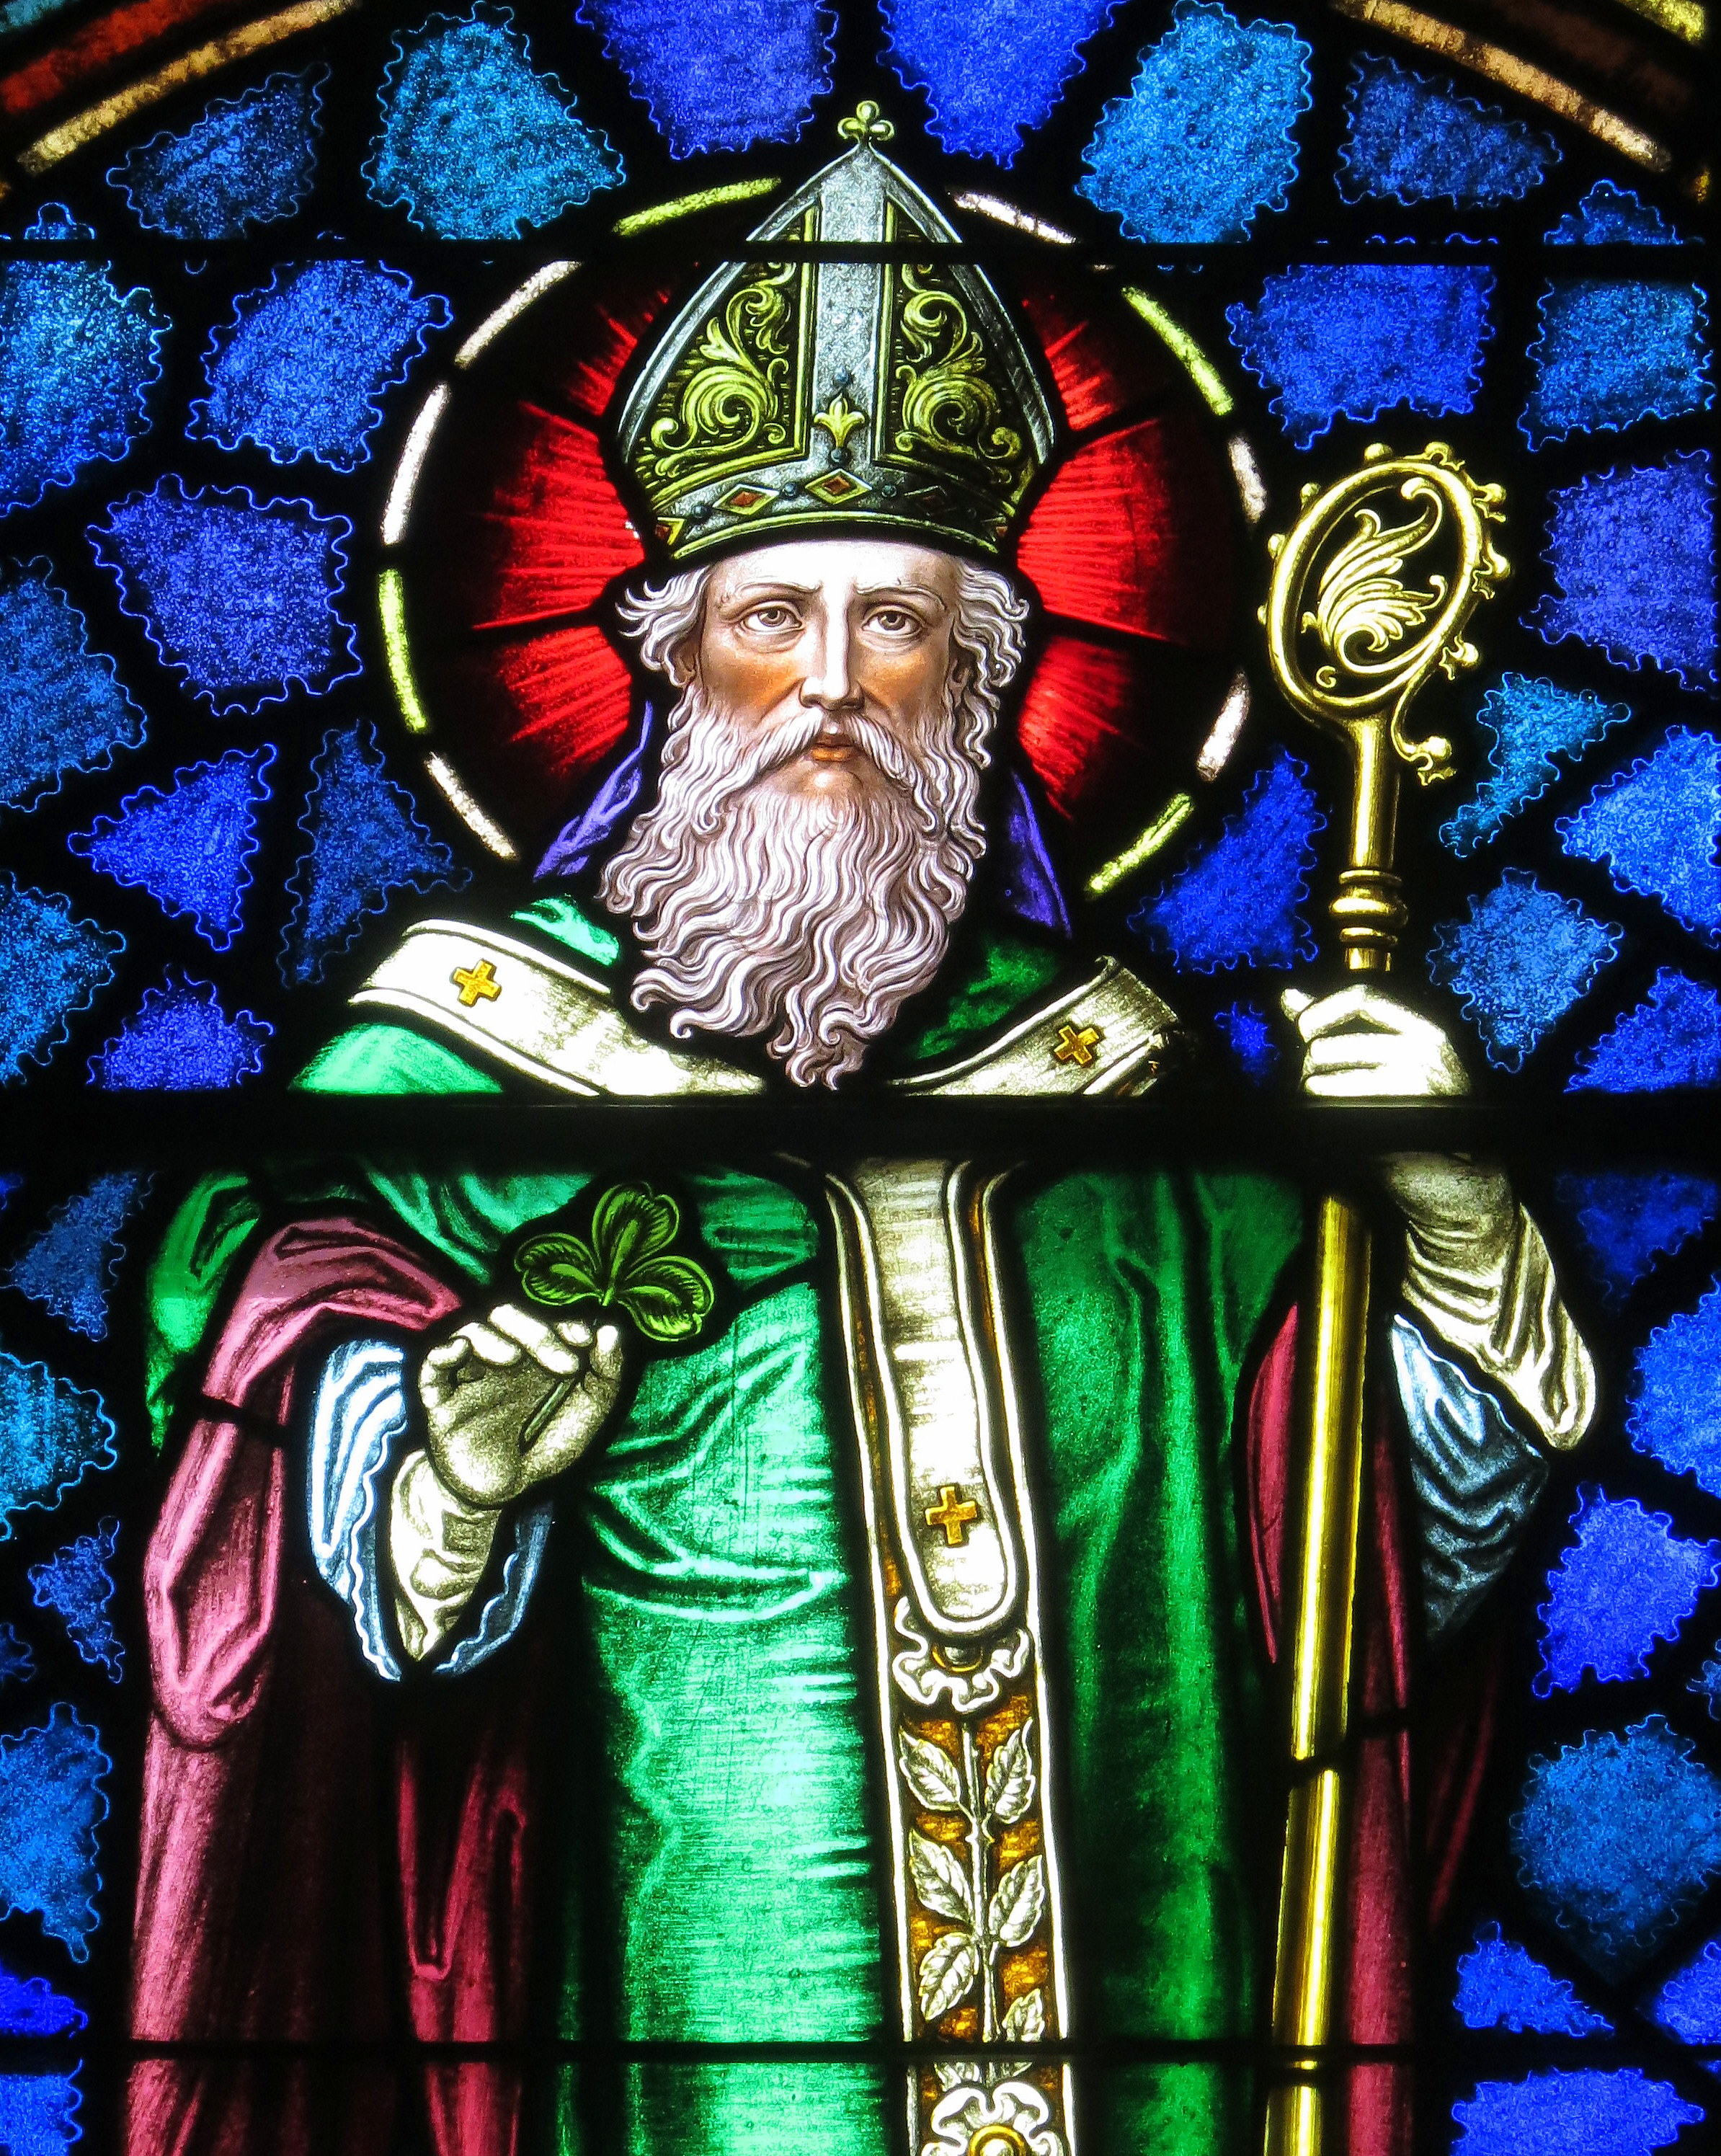 Saint_Patrick_Catholic_Church_(Junction_City,_Ohio)_-_stained_glass,_Saint_Patrick_-_detail.jpg (2388×2991)